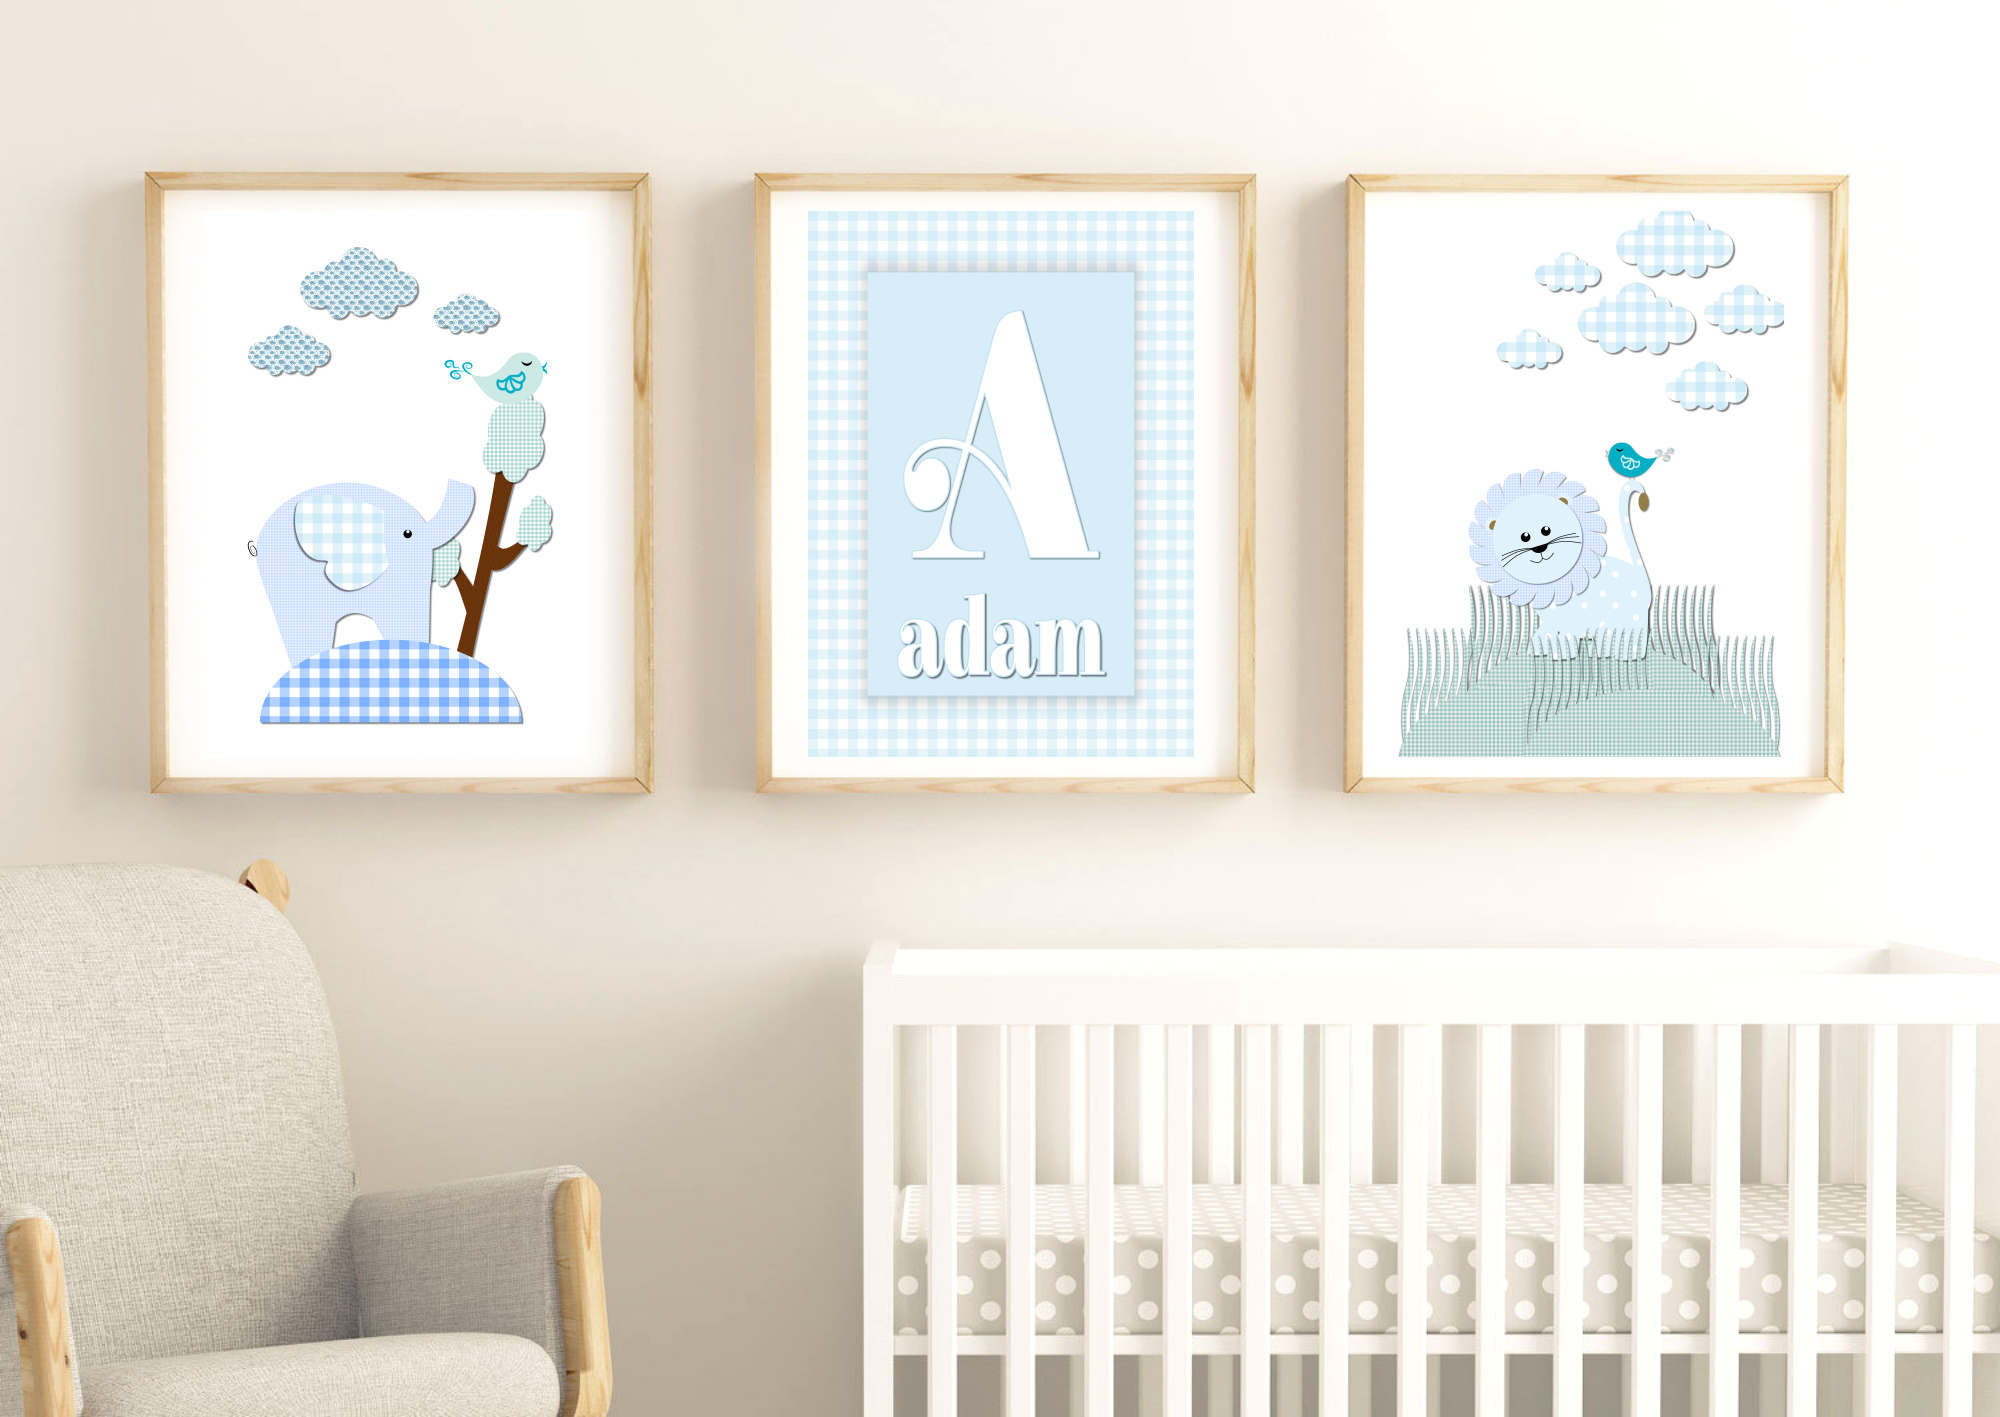 Savanna Animals Lion & Elephant Personalised Nursery Prints for Baby Boy by Kangaroo Kids Designs